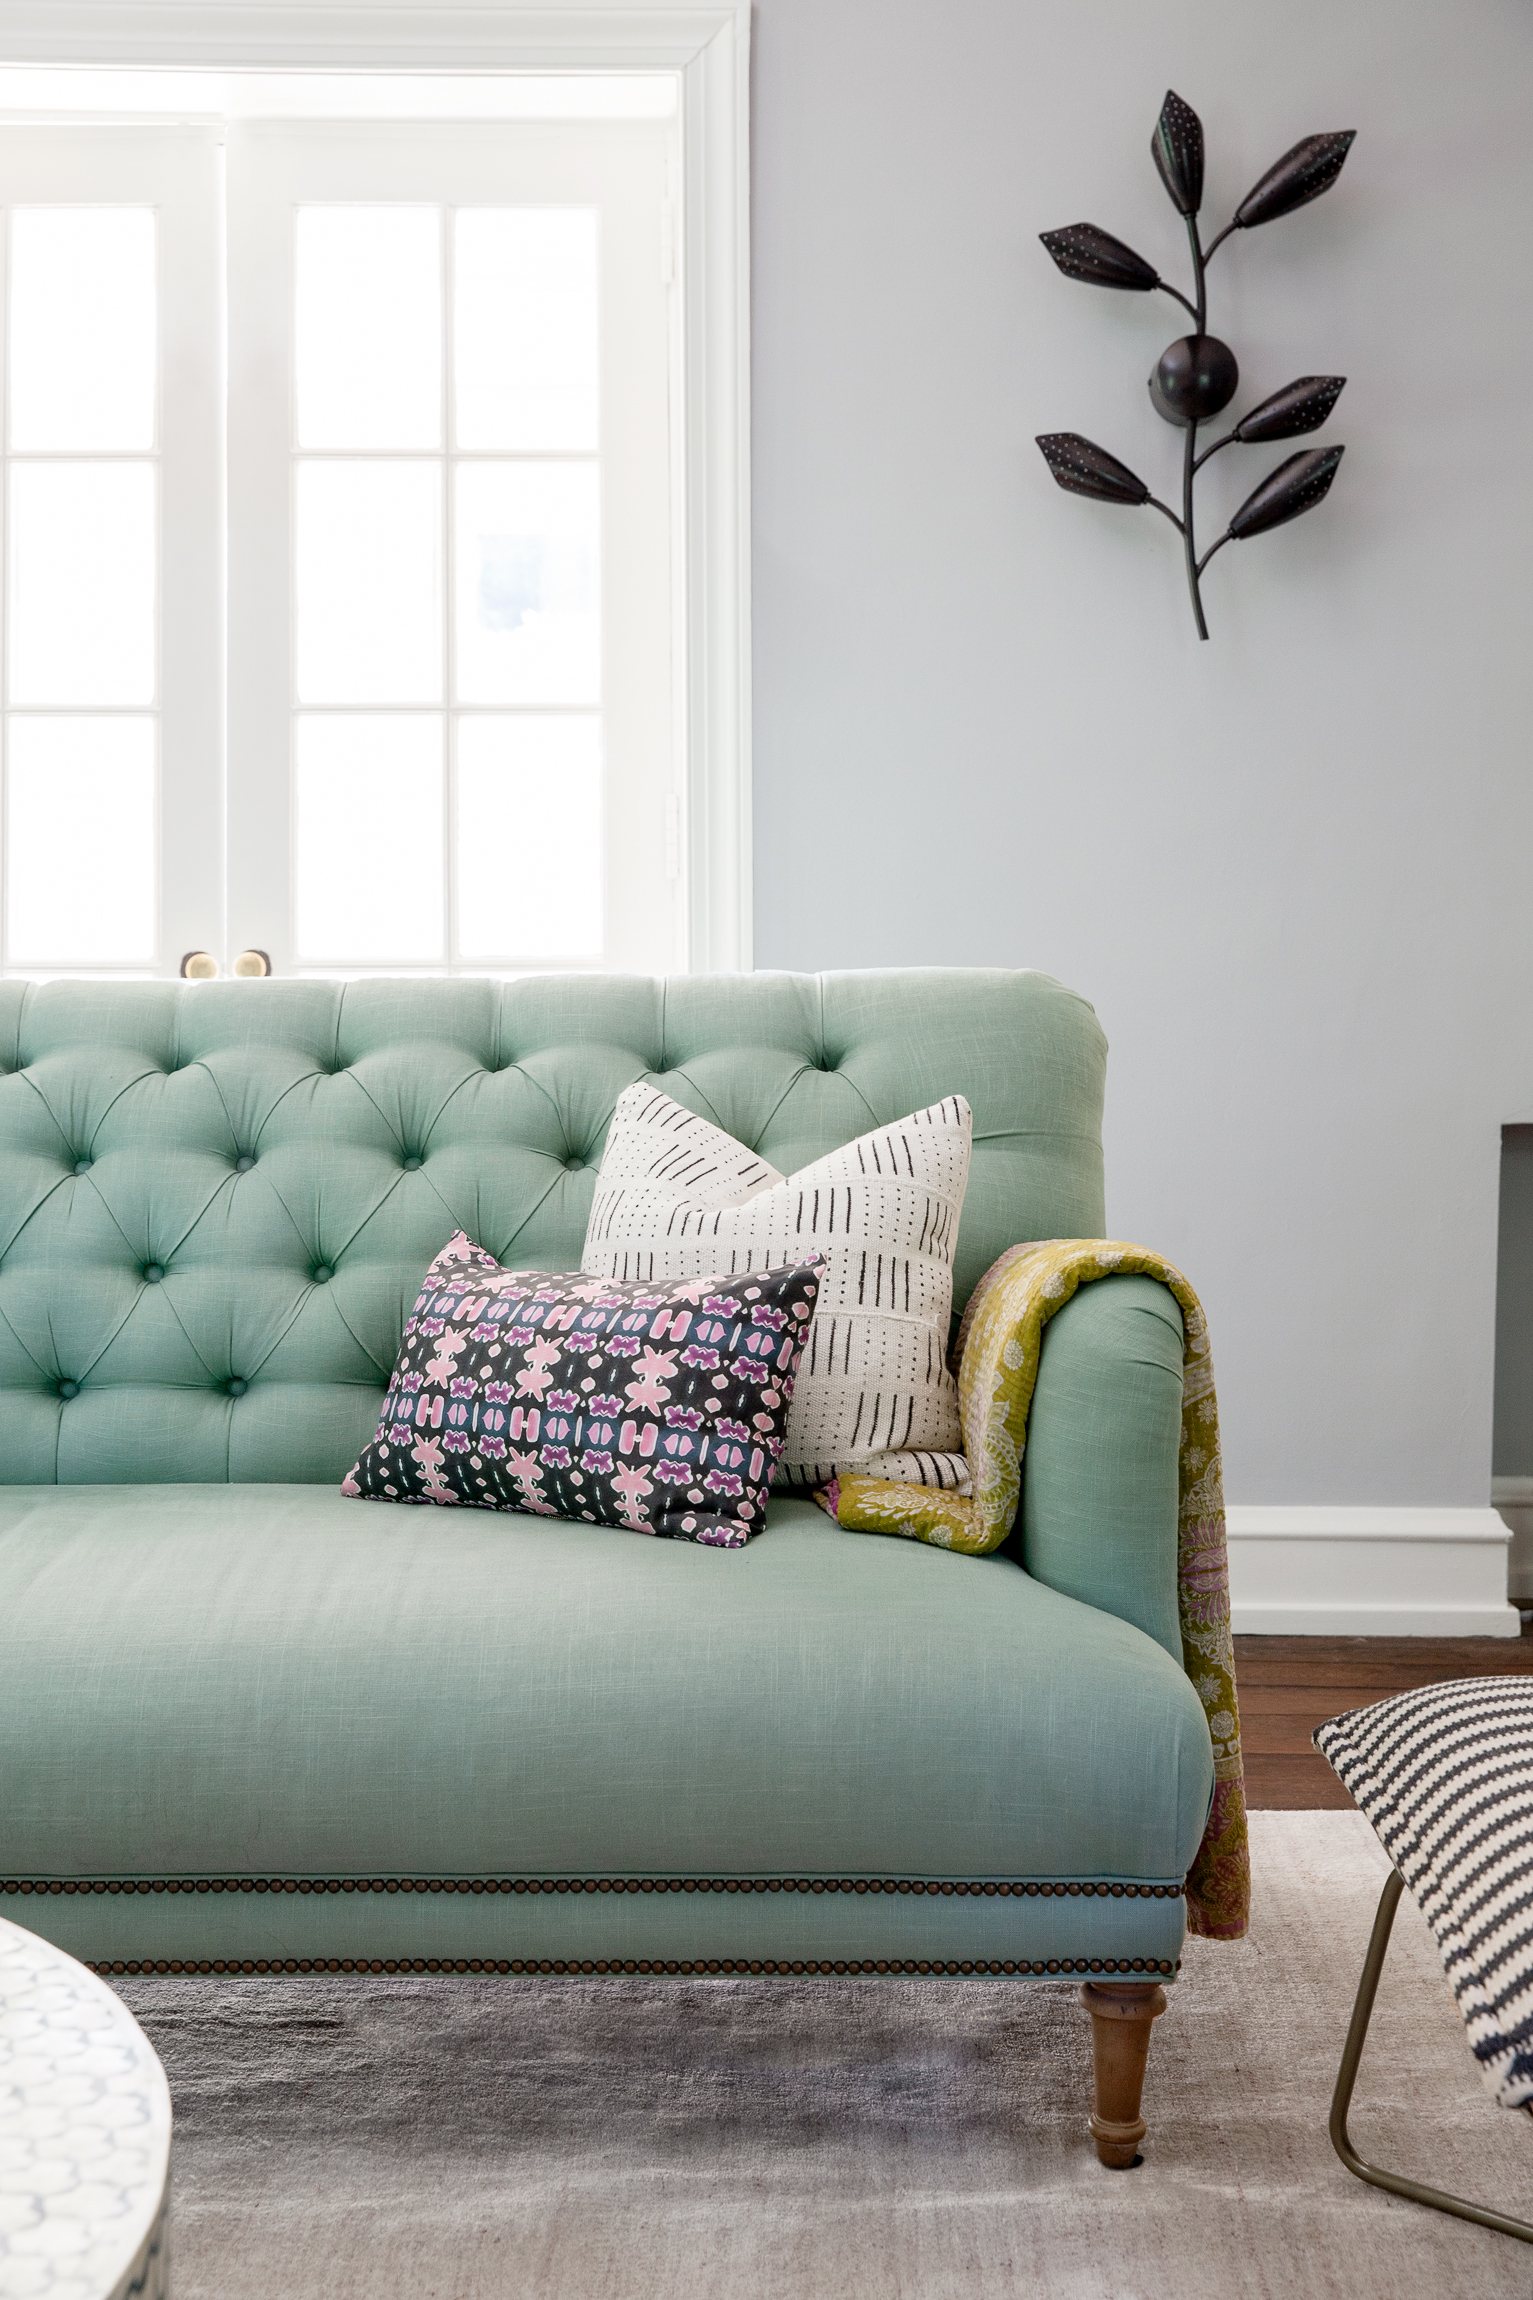 Michelle Gage // Get The Look: My Living Room (A Reveal)